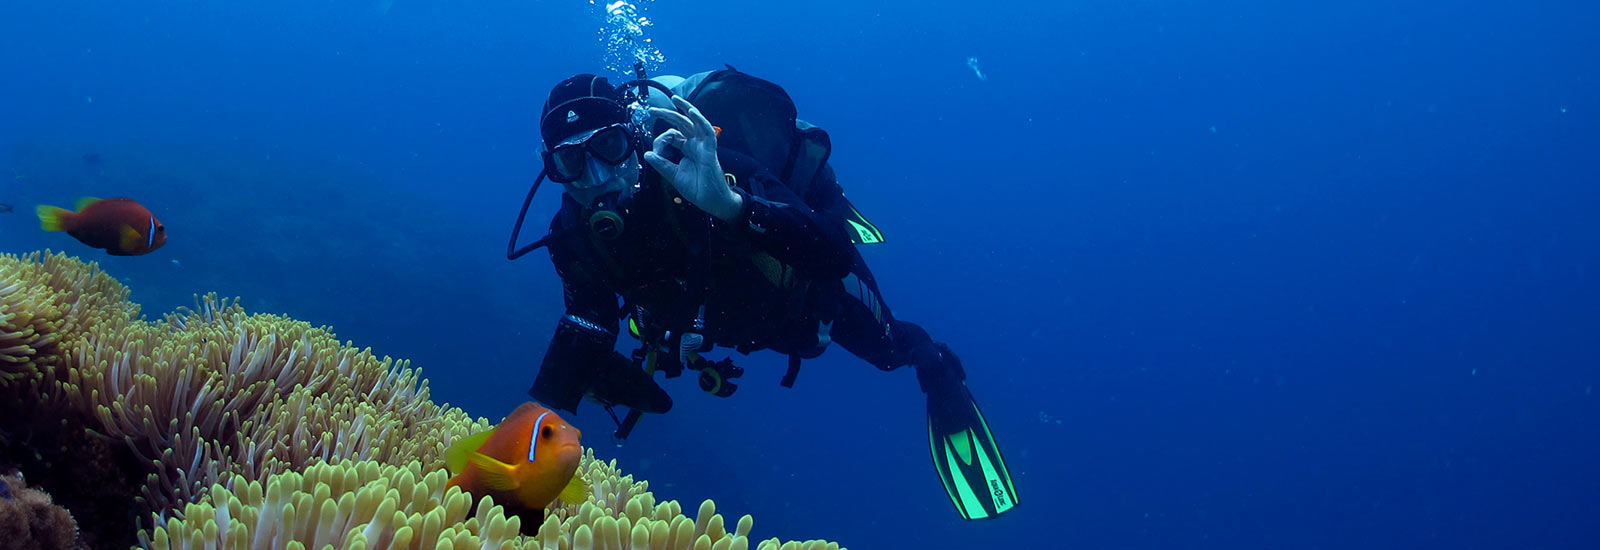 6 Types Of Divers Which Group Are You In Lite Diving Agency